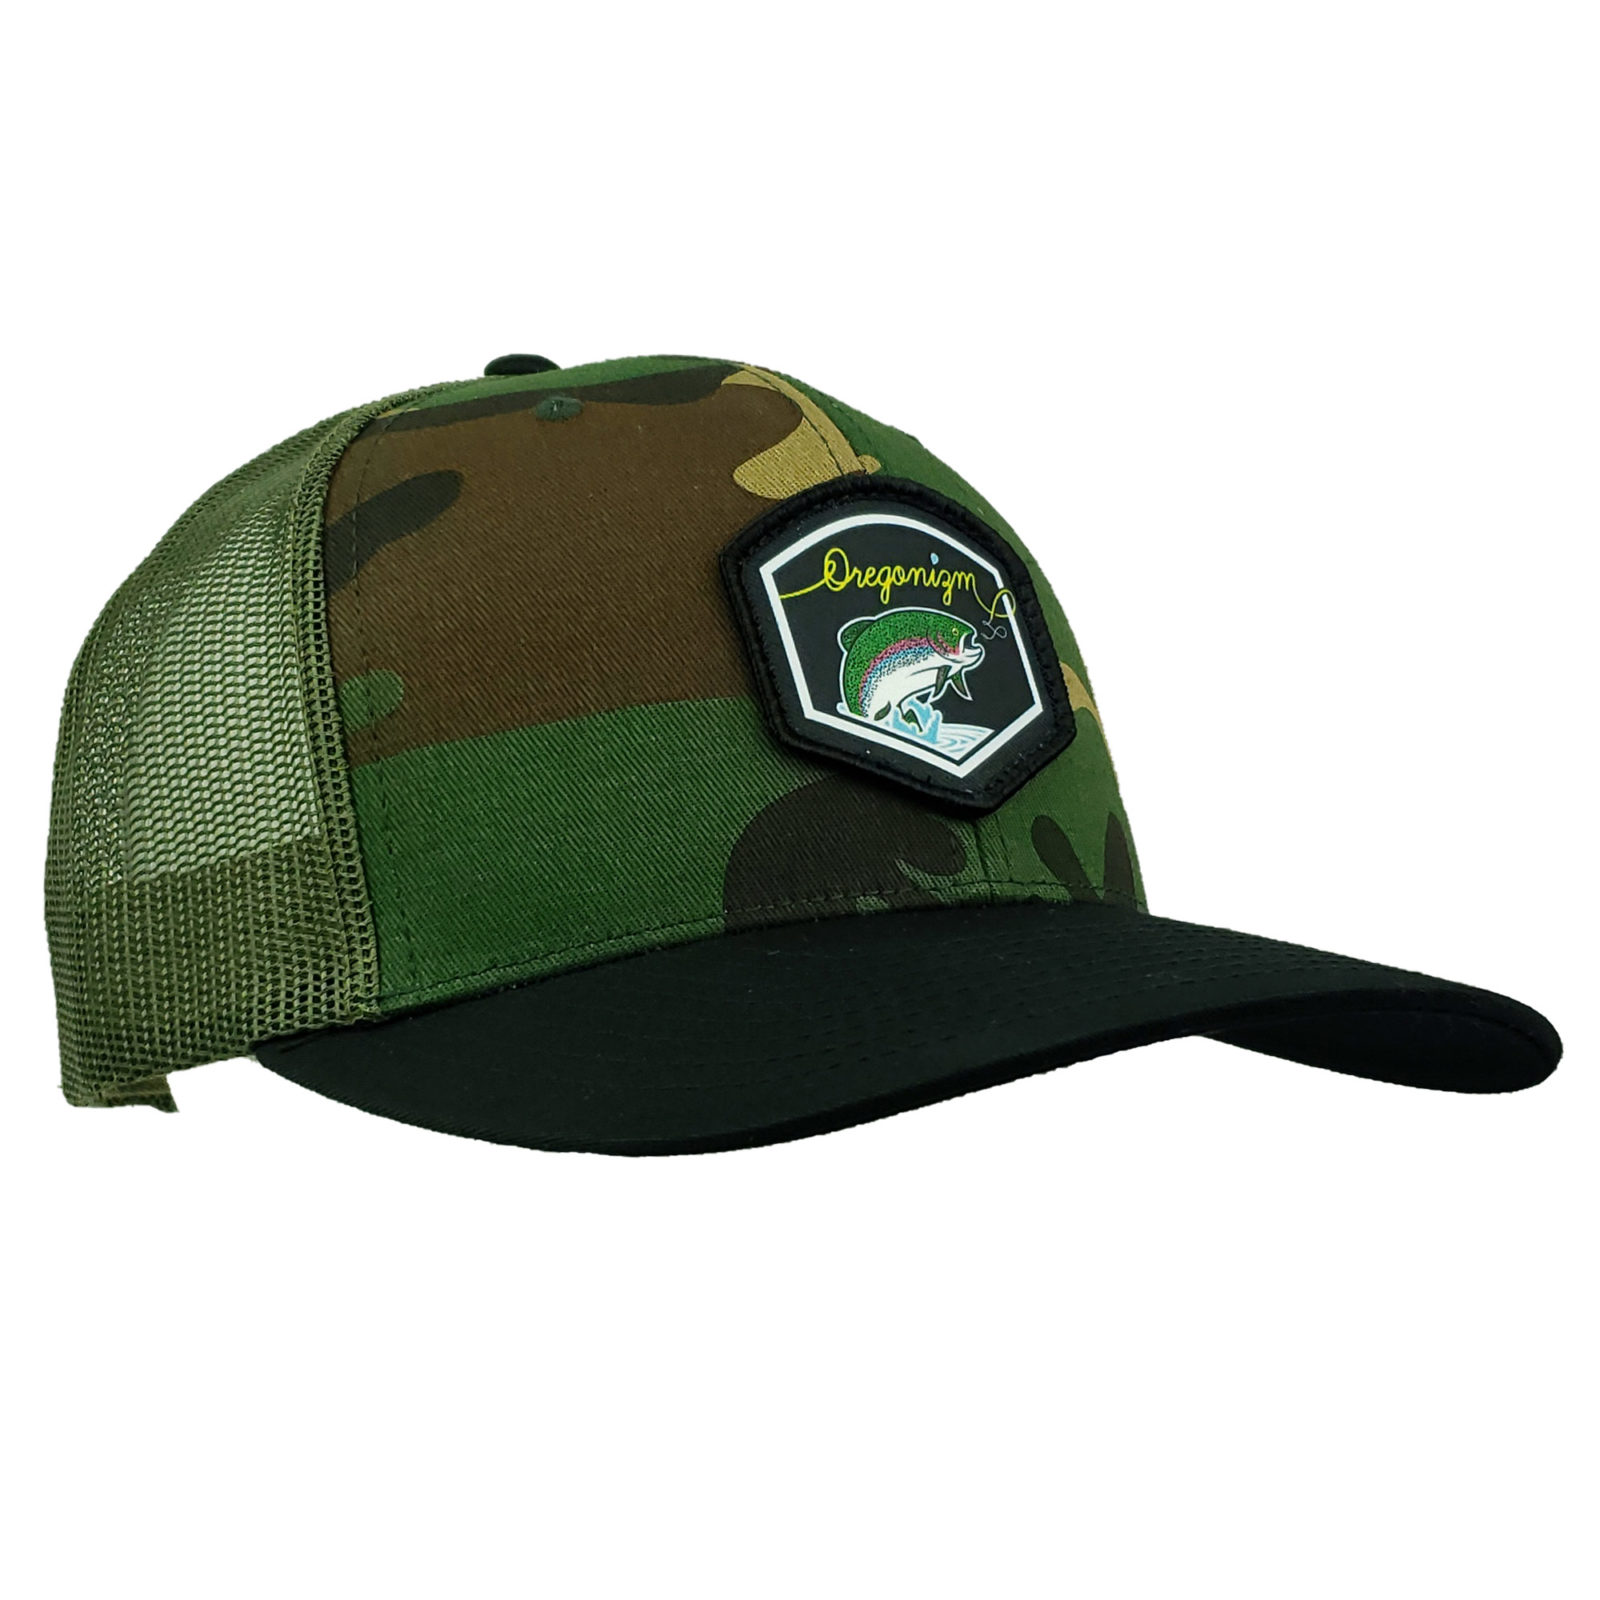 oregonizm-product-hat-troutizm-camo-primary